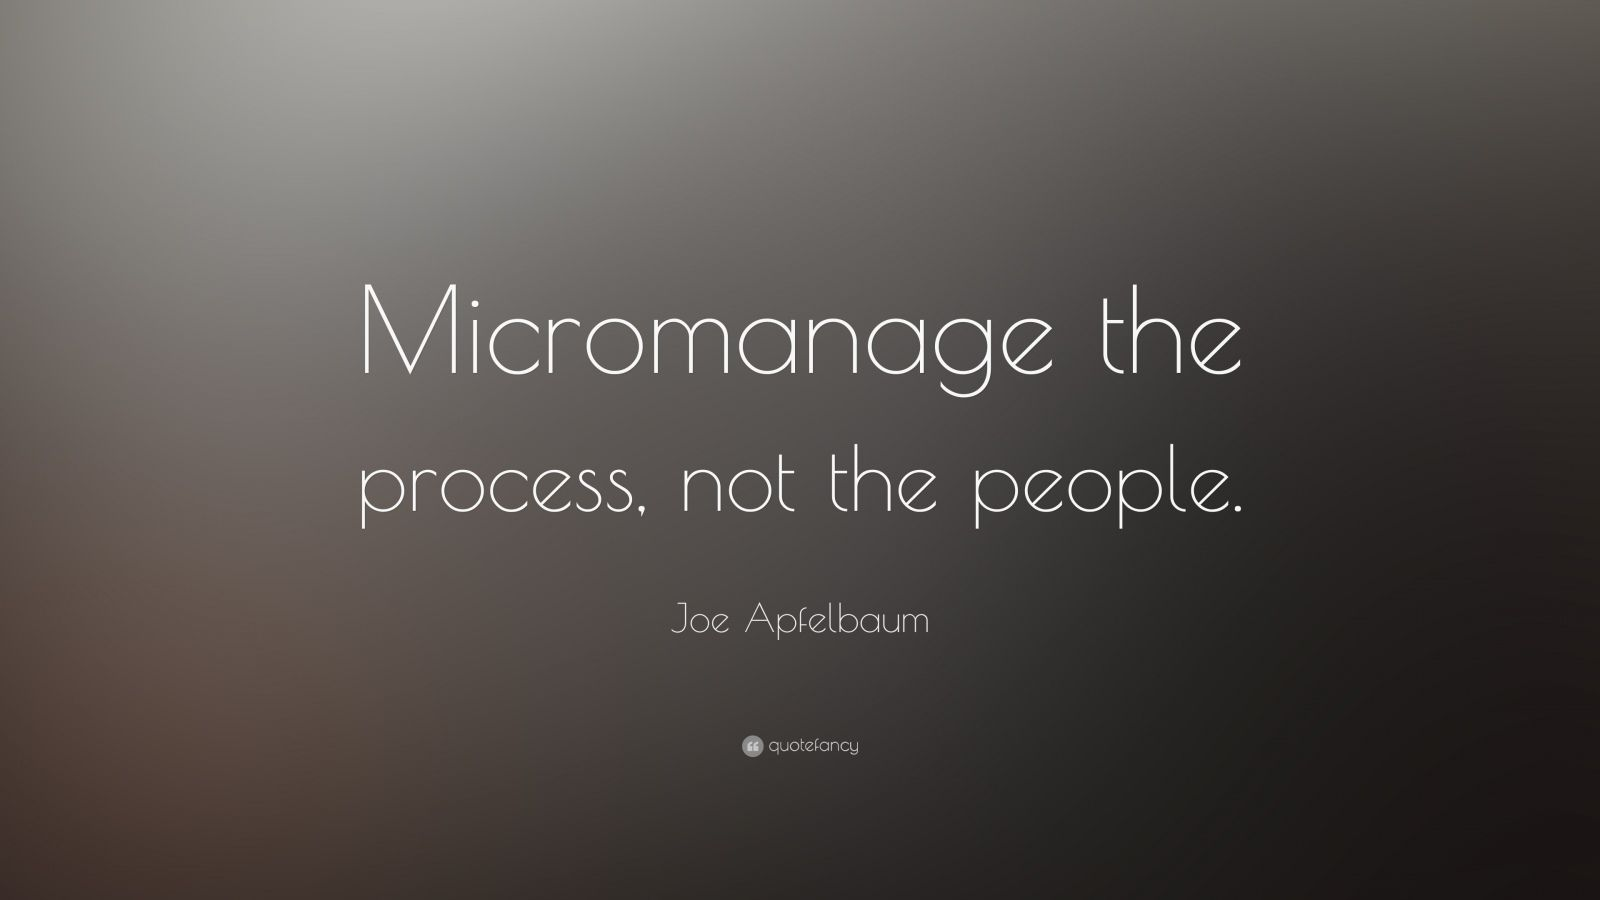 Inspirational Quote Wallpaper For Computer Joe Apfelbaum Quote Micromanage The Process Not The